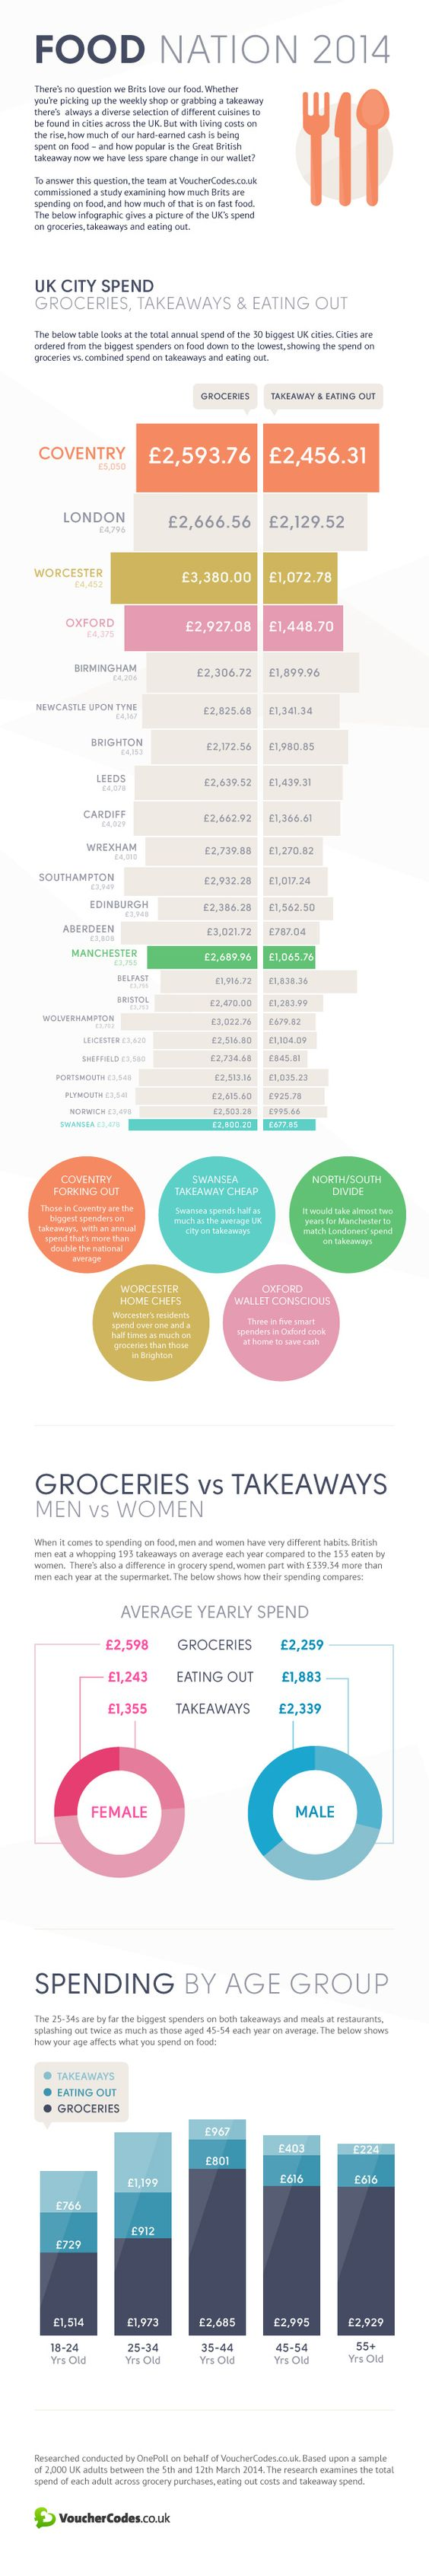 Brits spend a staggering £3,875.12 per year on food - a massive third of which is on takeways and meals out. How often do you eat out? #food #infographic